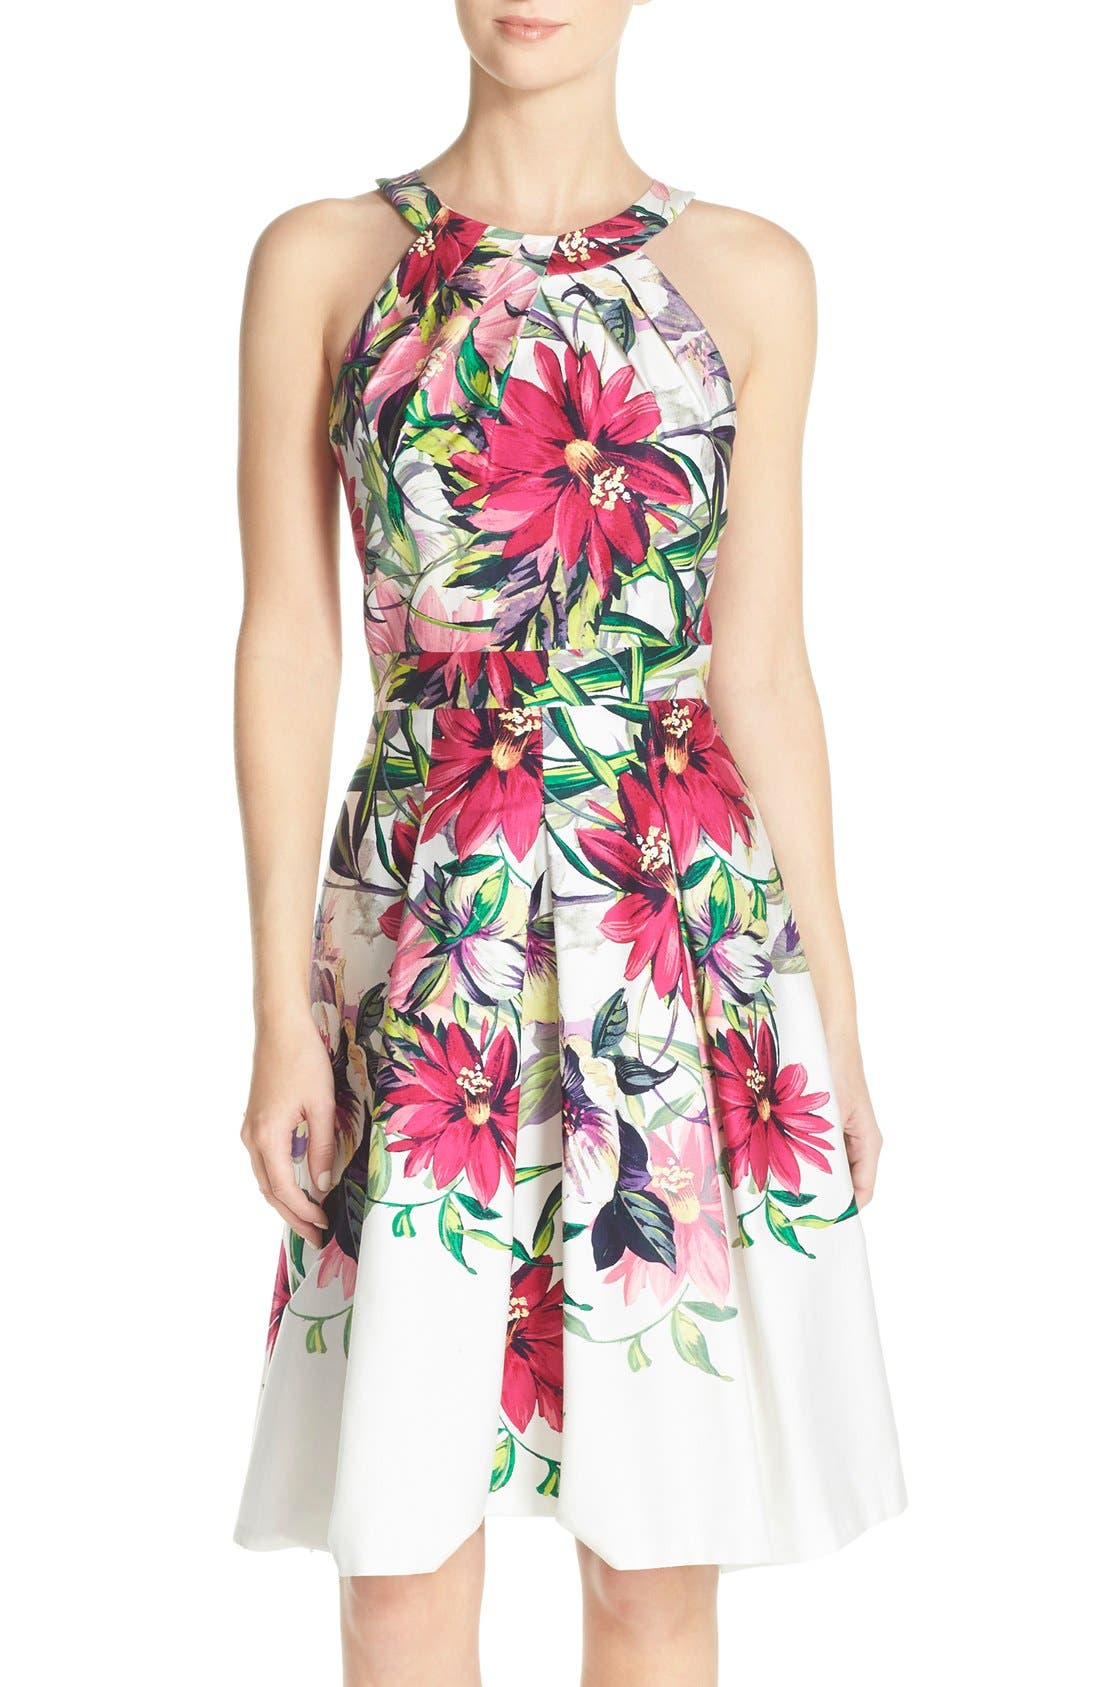 Floral Print Tea Length Fit & Flare Dress,                             Main thumbnail 1, color,                             Ivory/ Pink Print